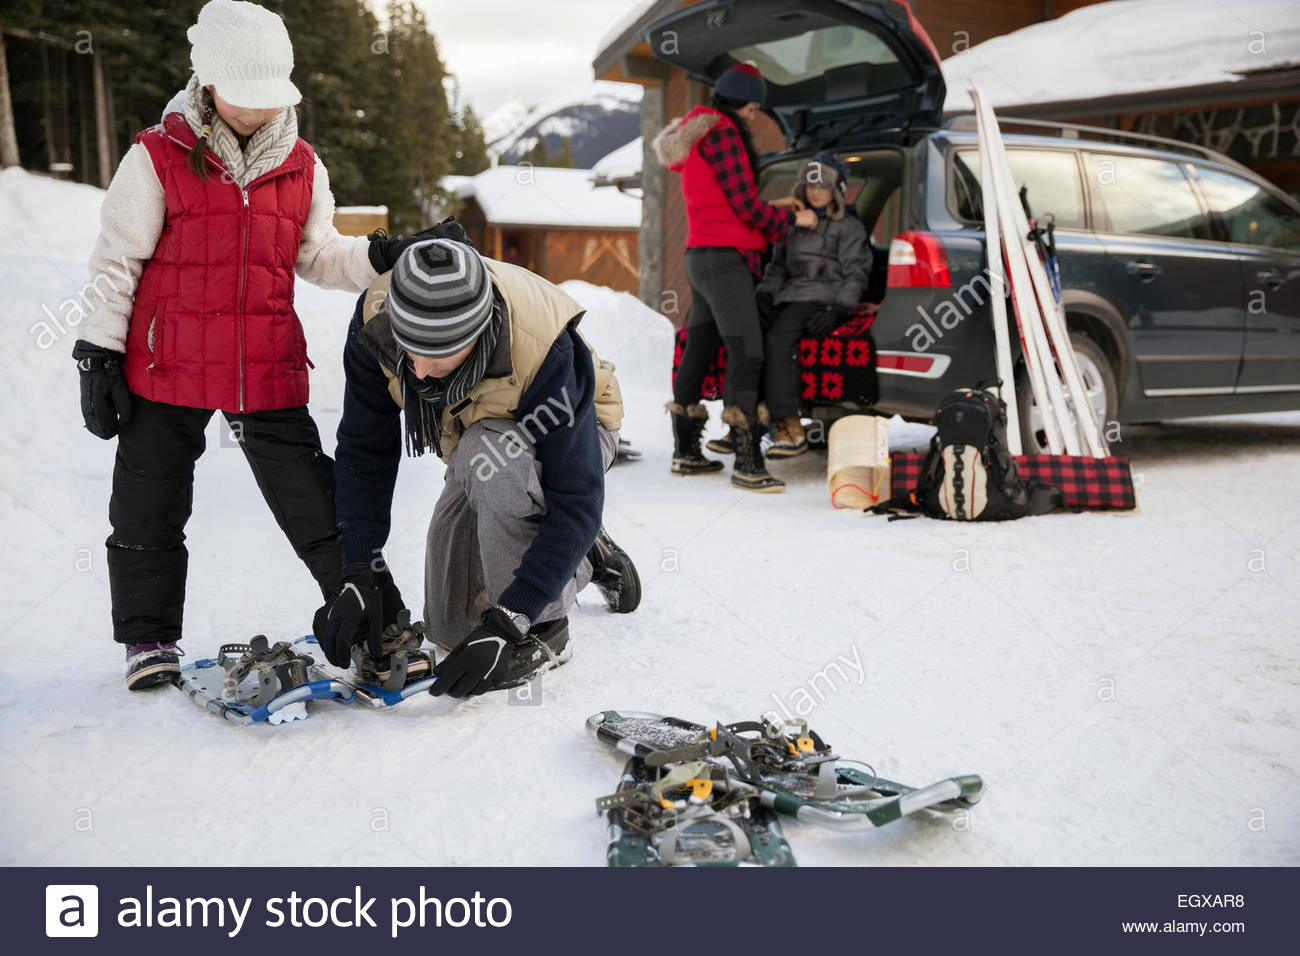 Father fastening snowshoes on daughter in snowy driveway - Stock Image